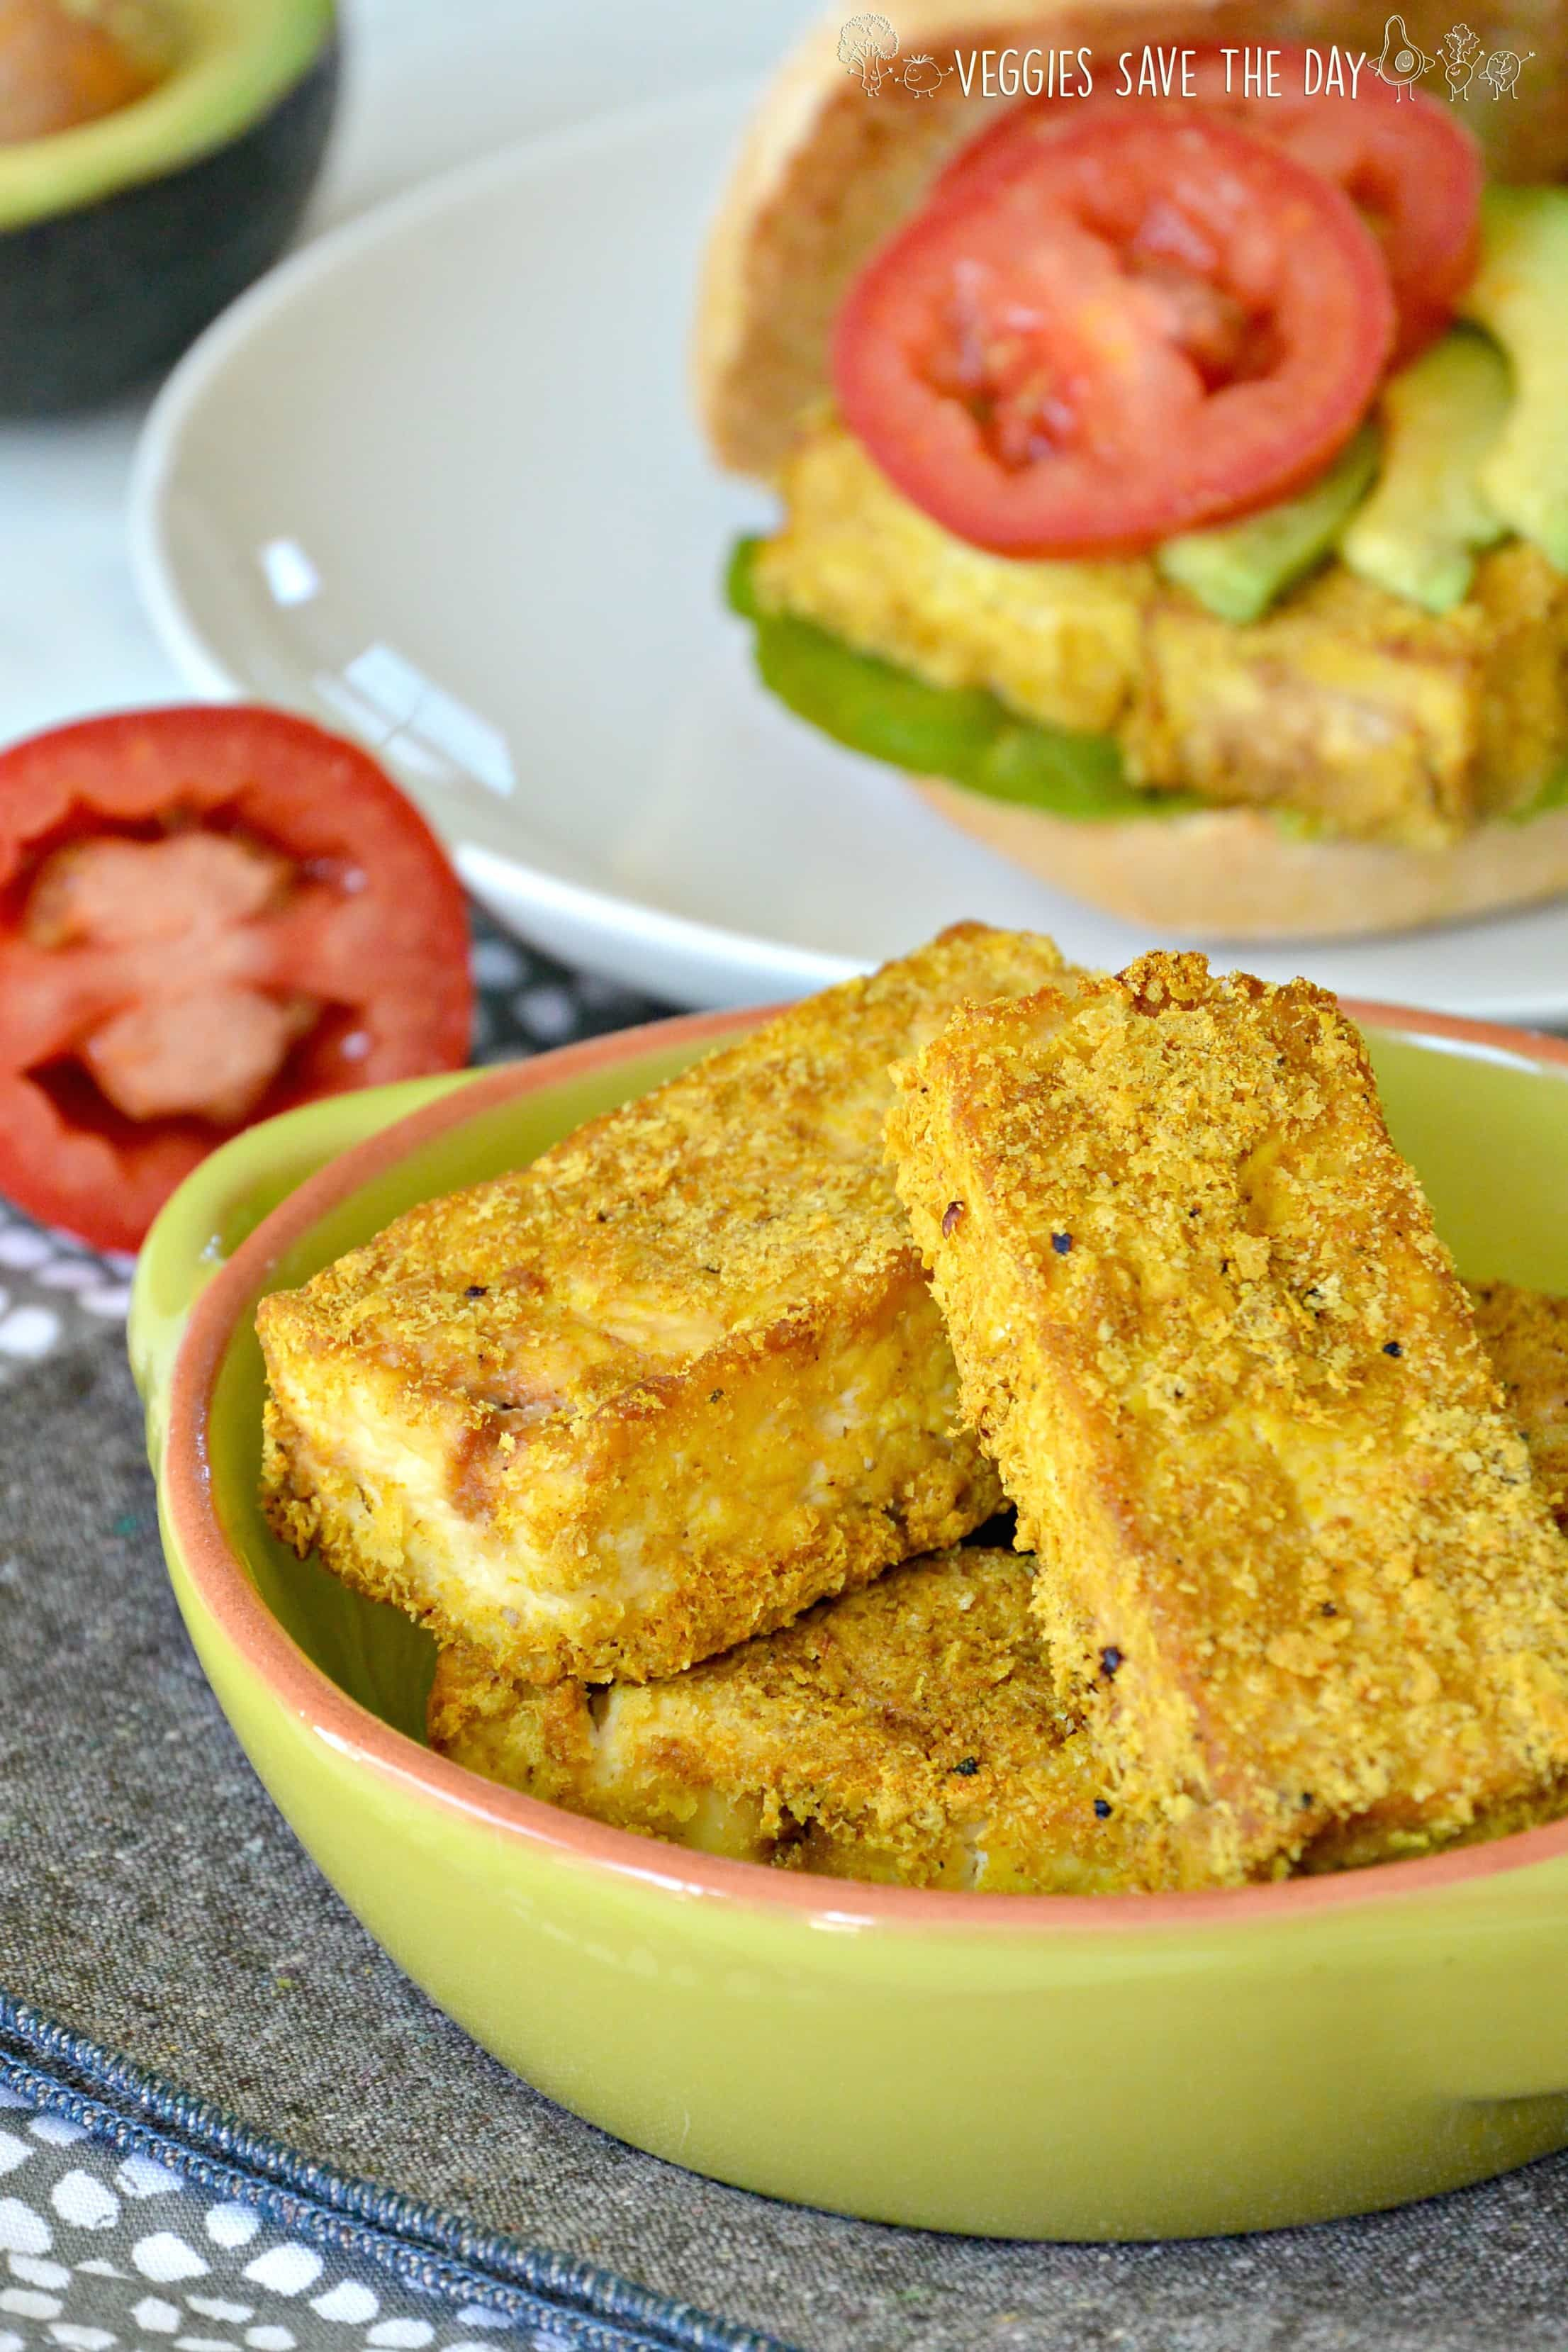 Breakfast Tofu From The No Meat Athlete Cookbook No Meat Athlete Cookbook Recipes Whole Food Recipes